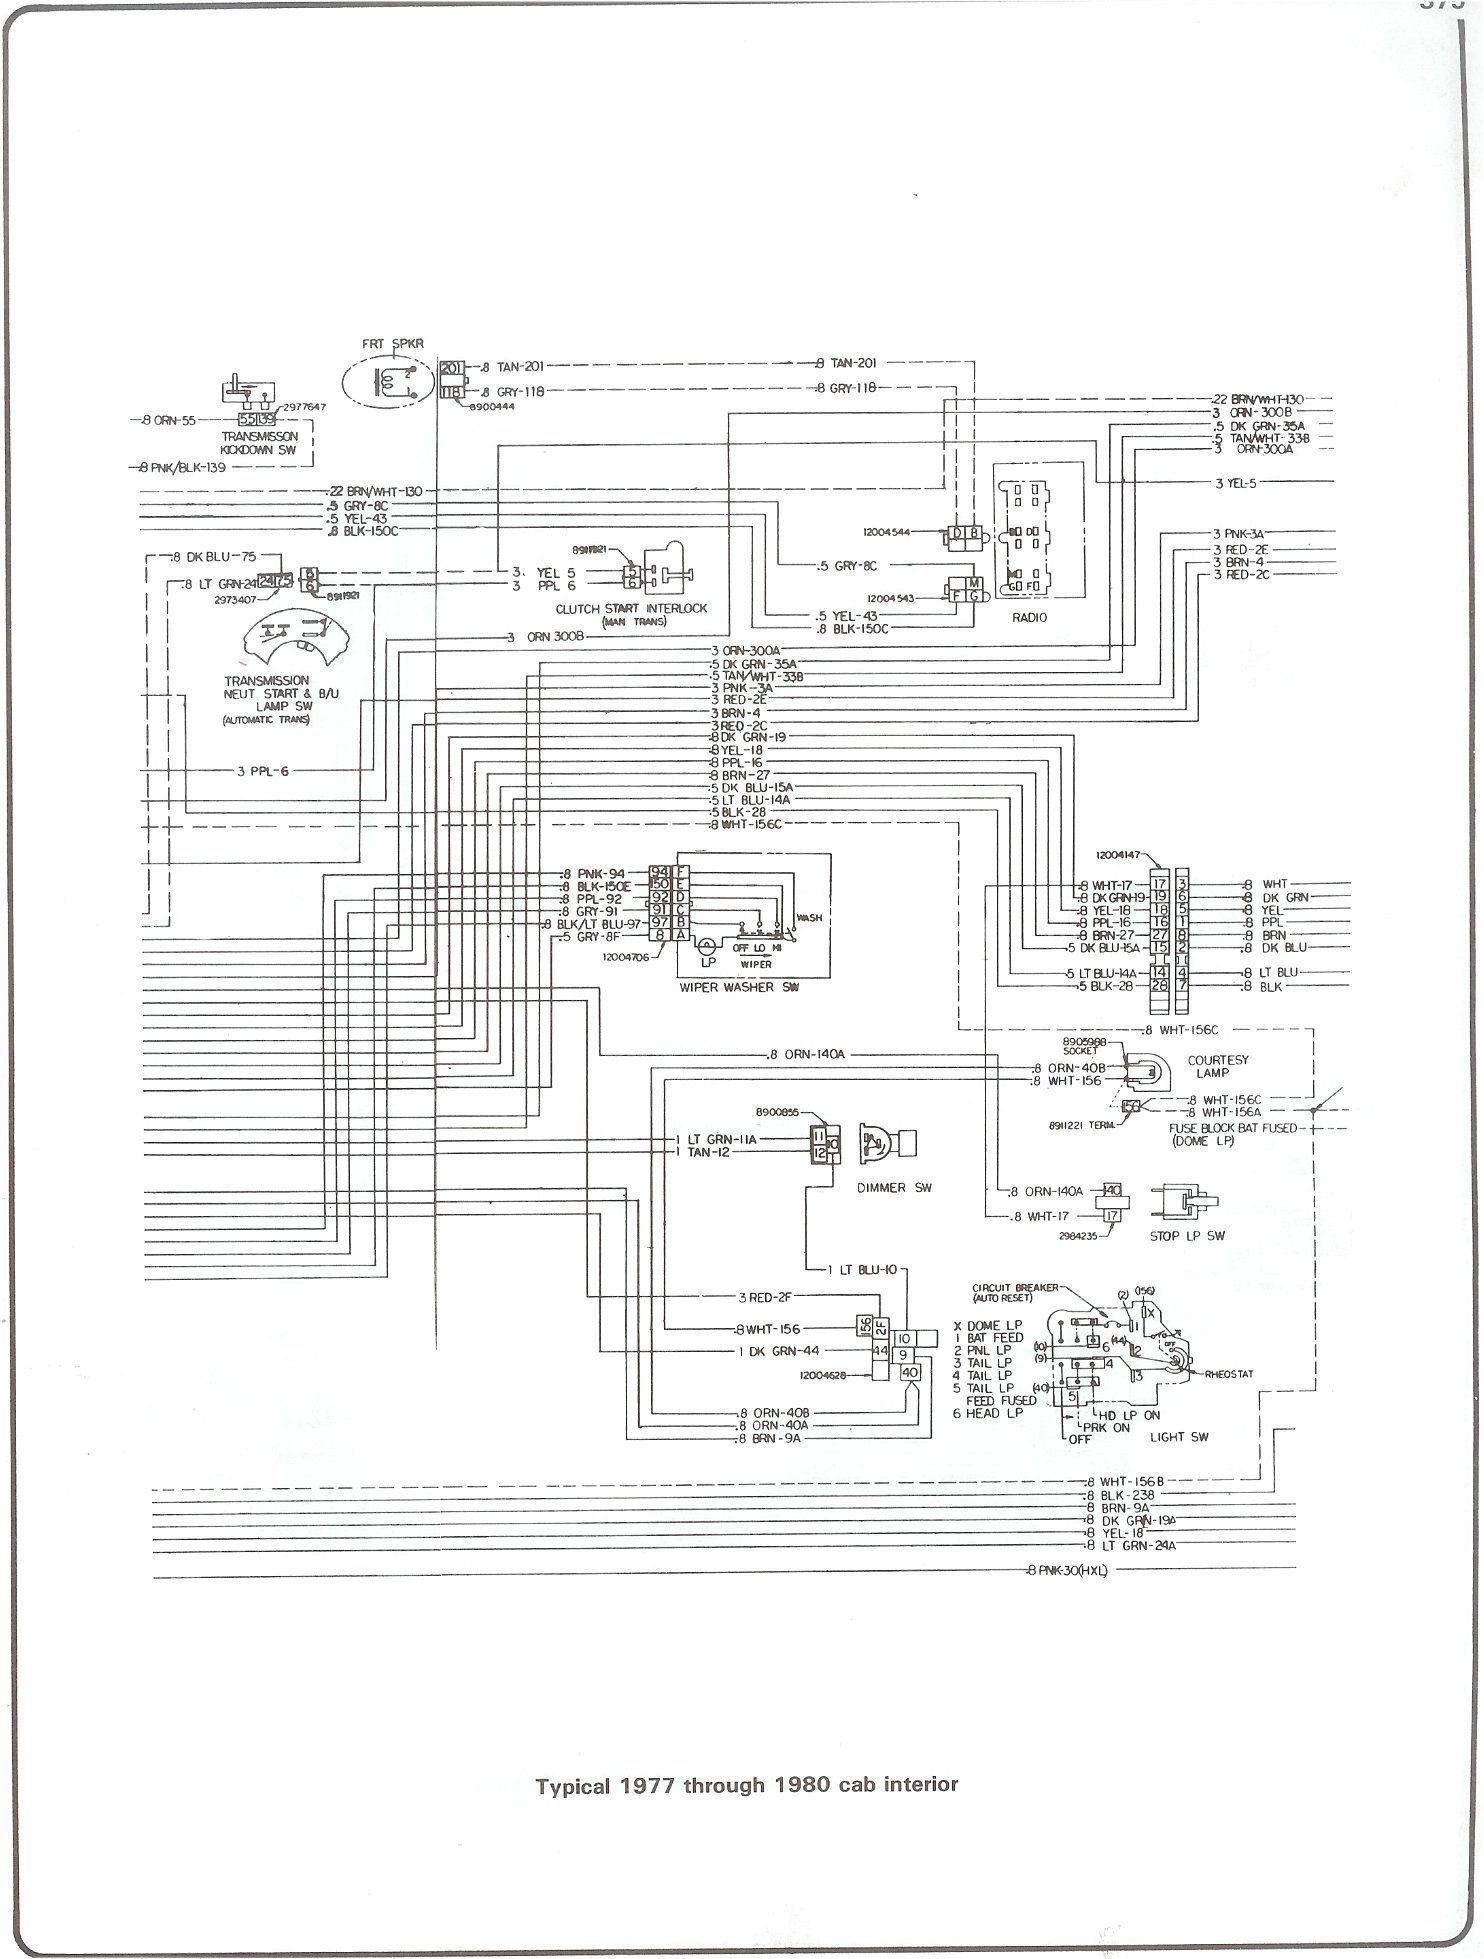 complete 73 87 wiring diagrams rh forum 73 87chevytrucks com 1968 chevy c20 wiring diagram 1970 chevy c20 wiring diagram